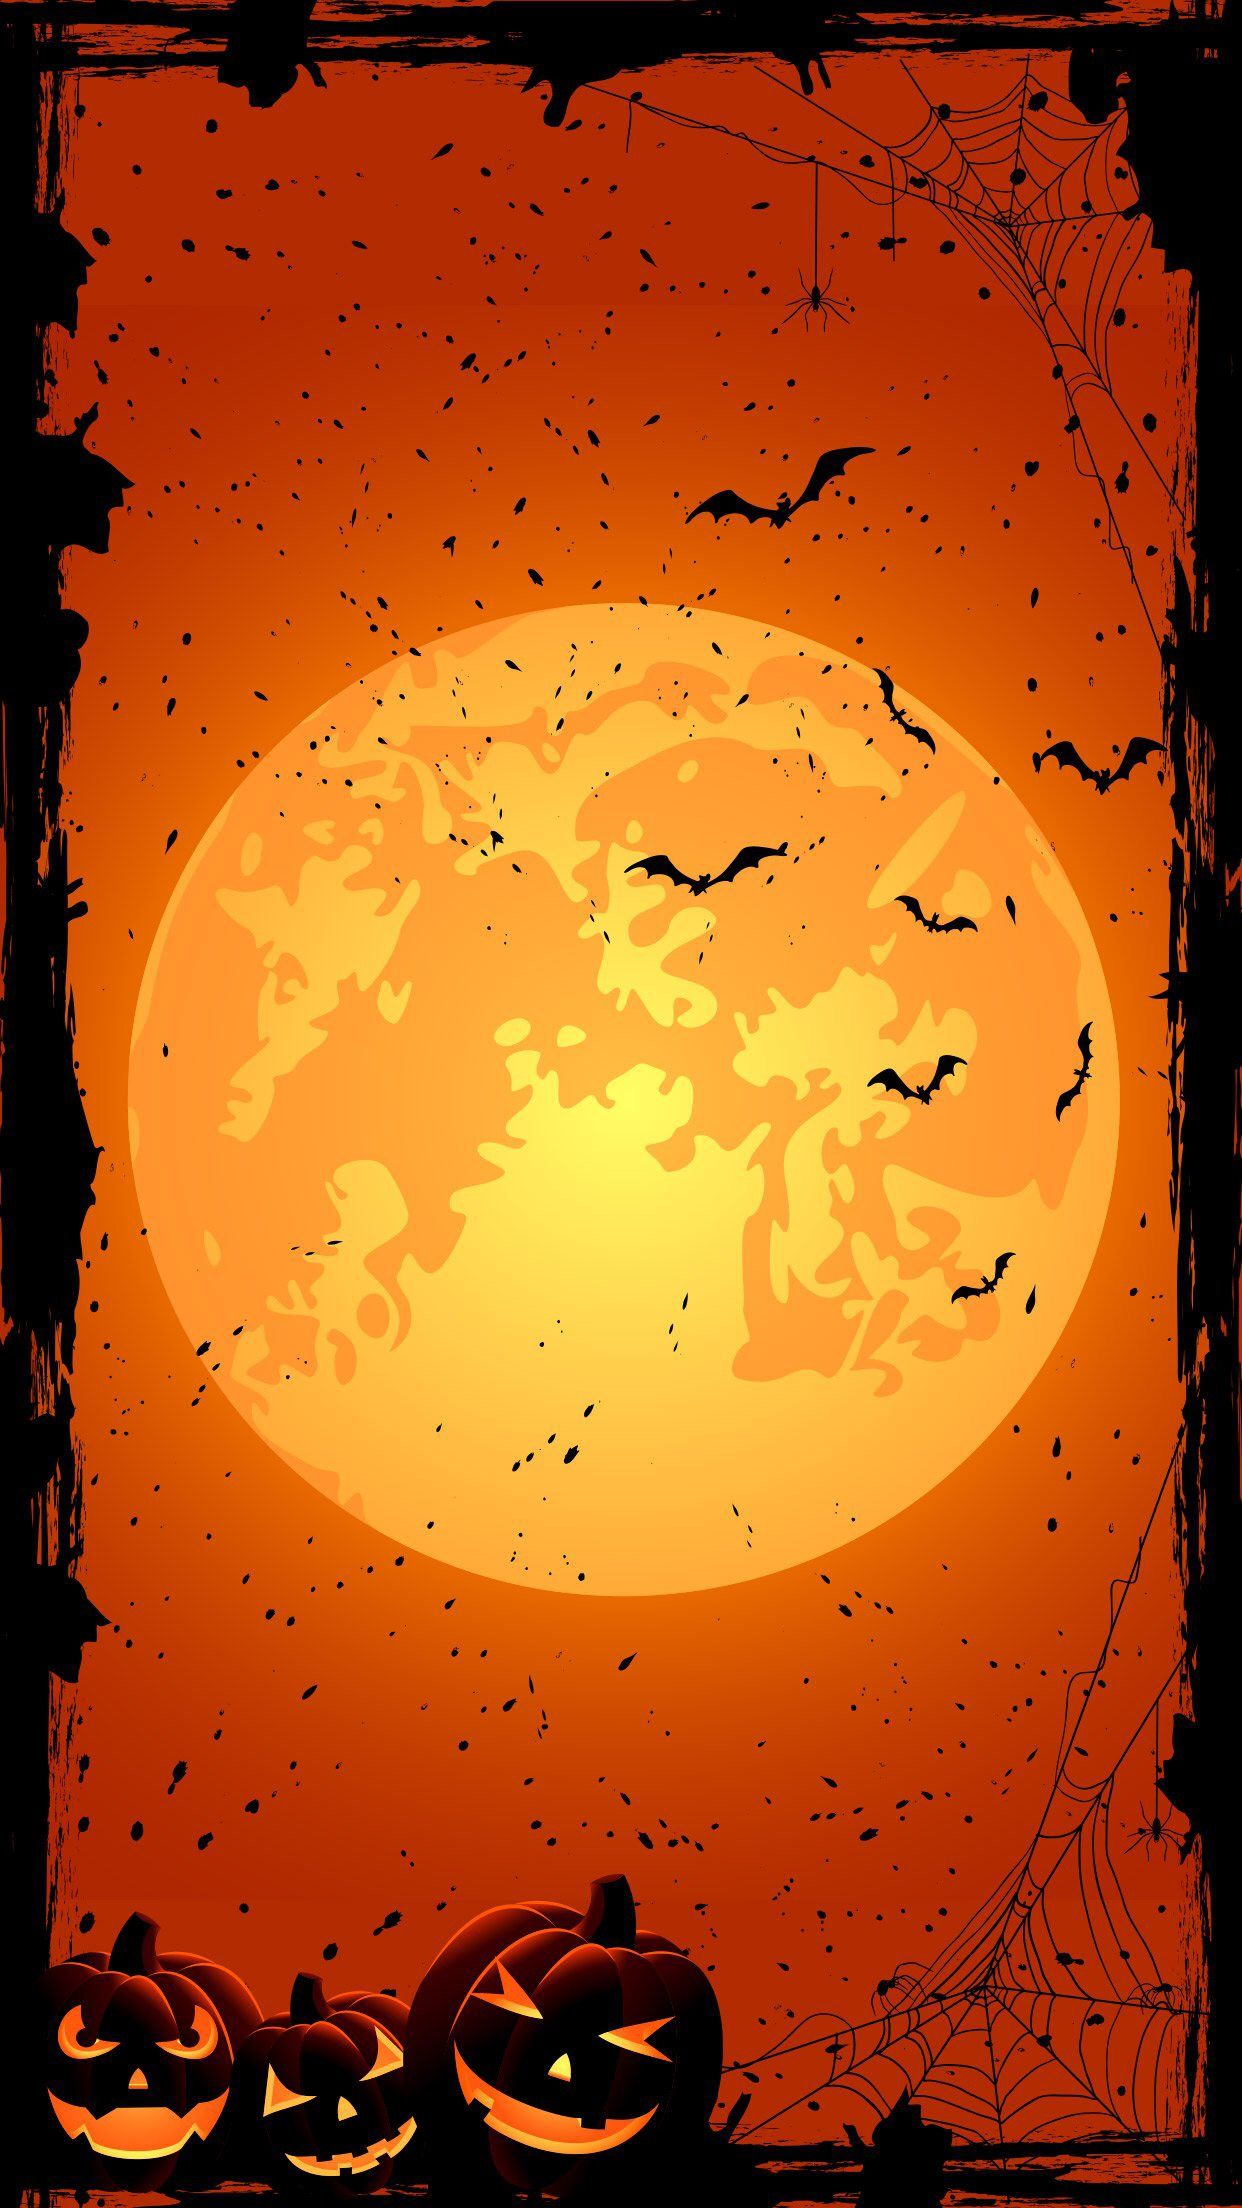 Halloweenwallpapers Halloween wallpaper, Halloween